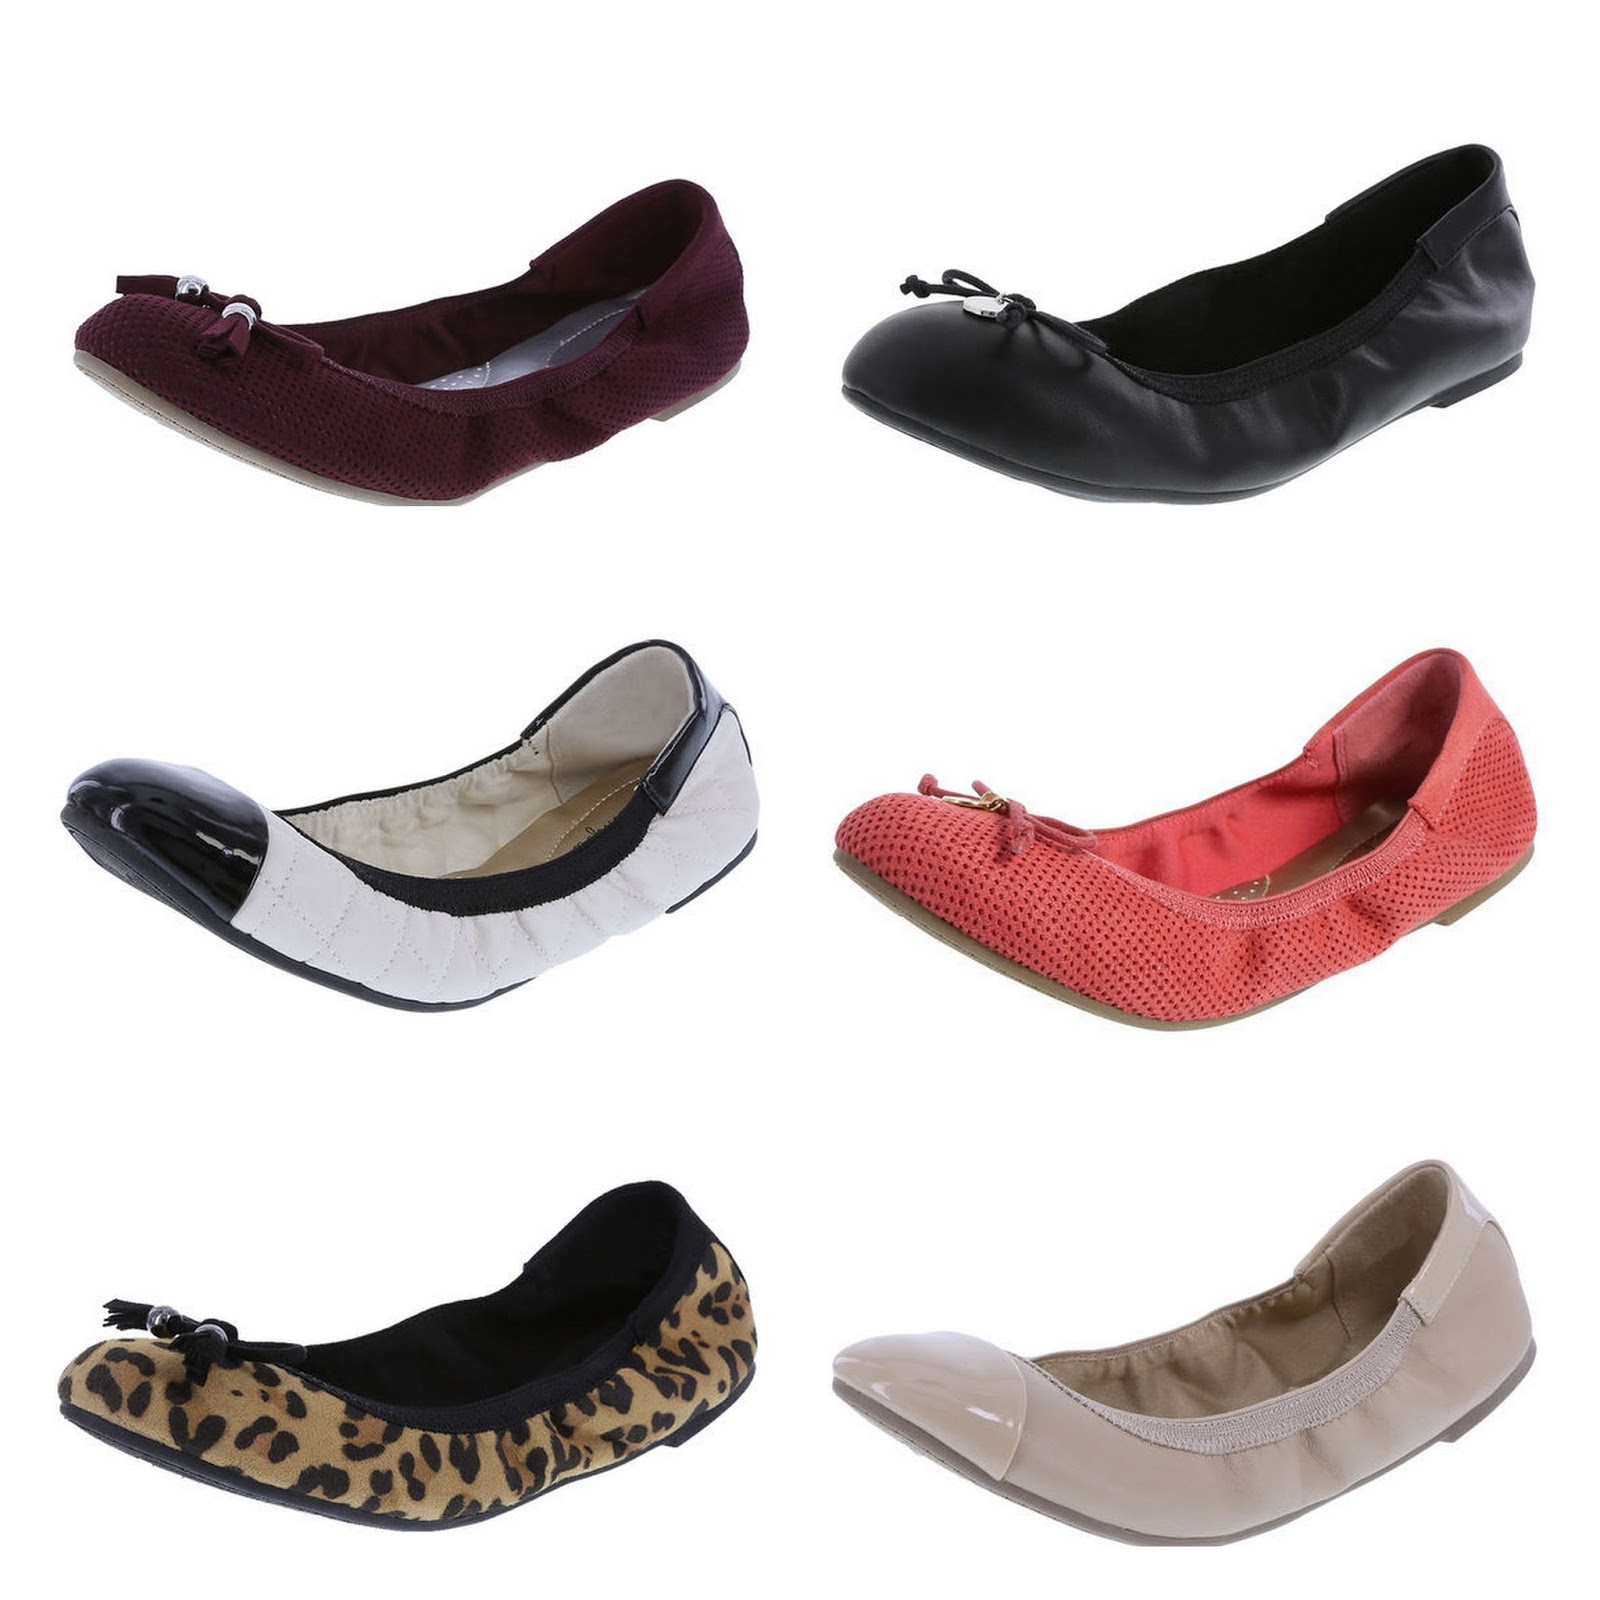 minna shoes slippers walking flats orthopedic to for ballet silo vionic slipper most comfortable click image zoom onyx comforter